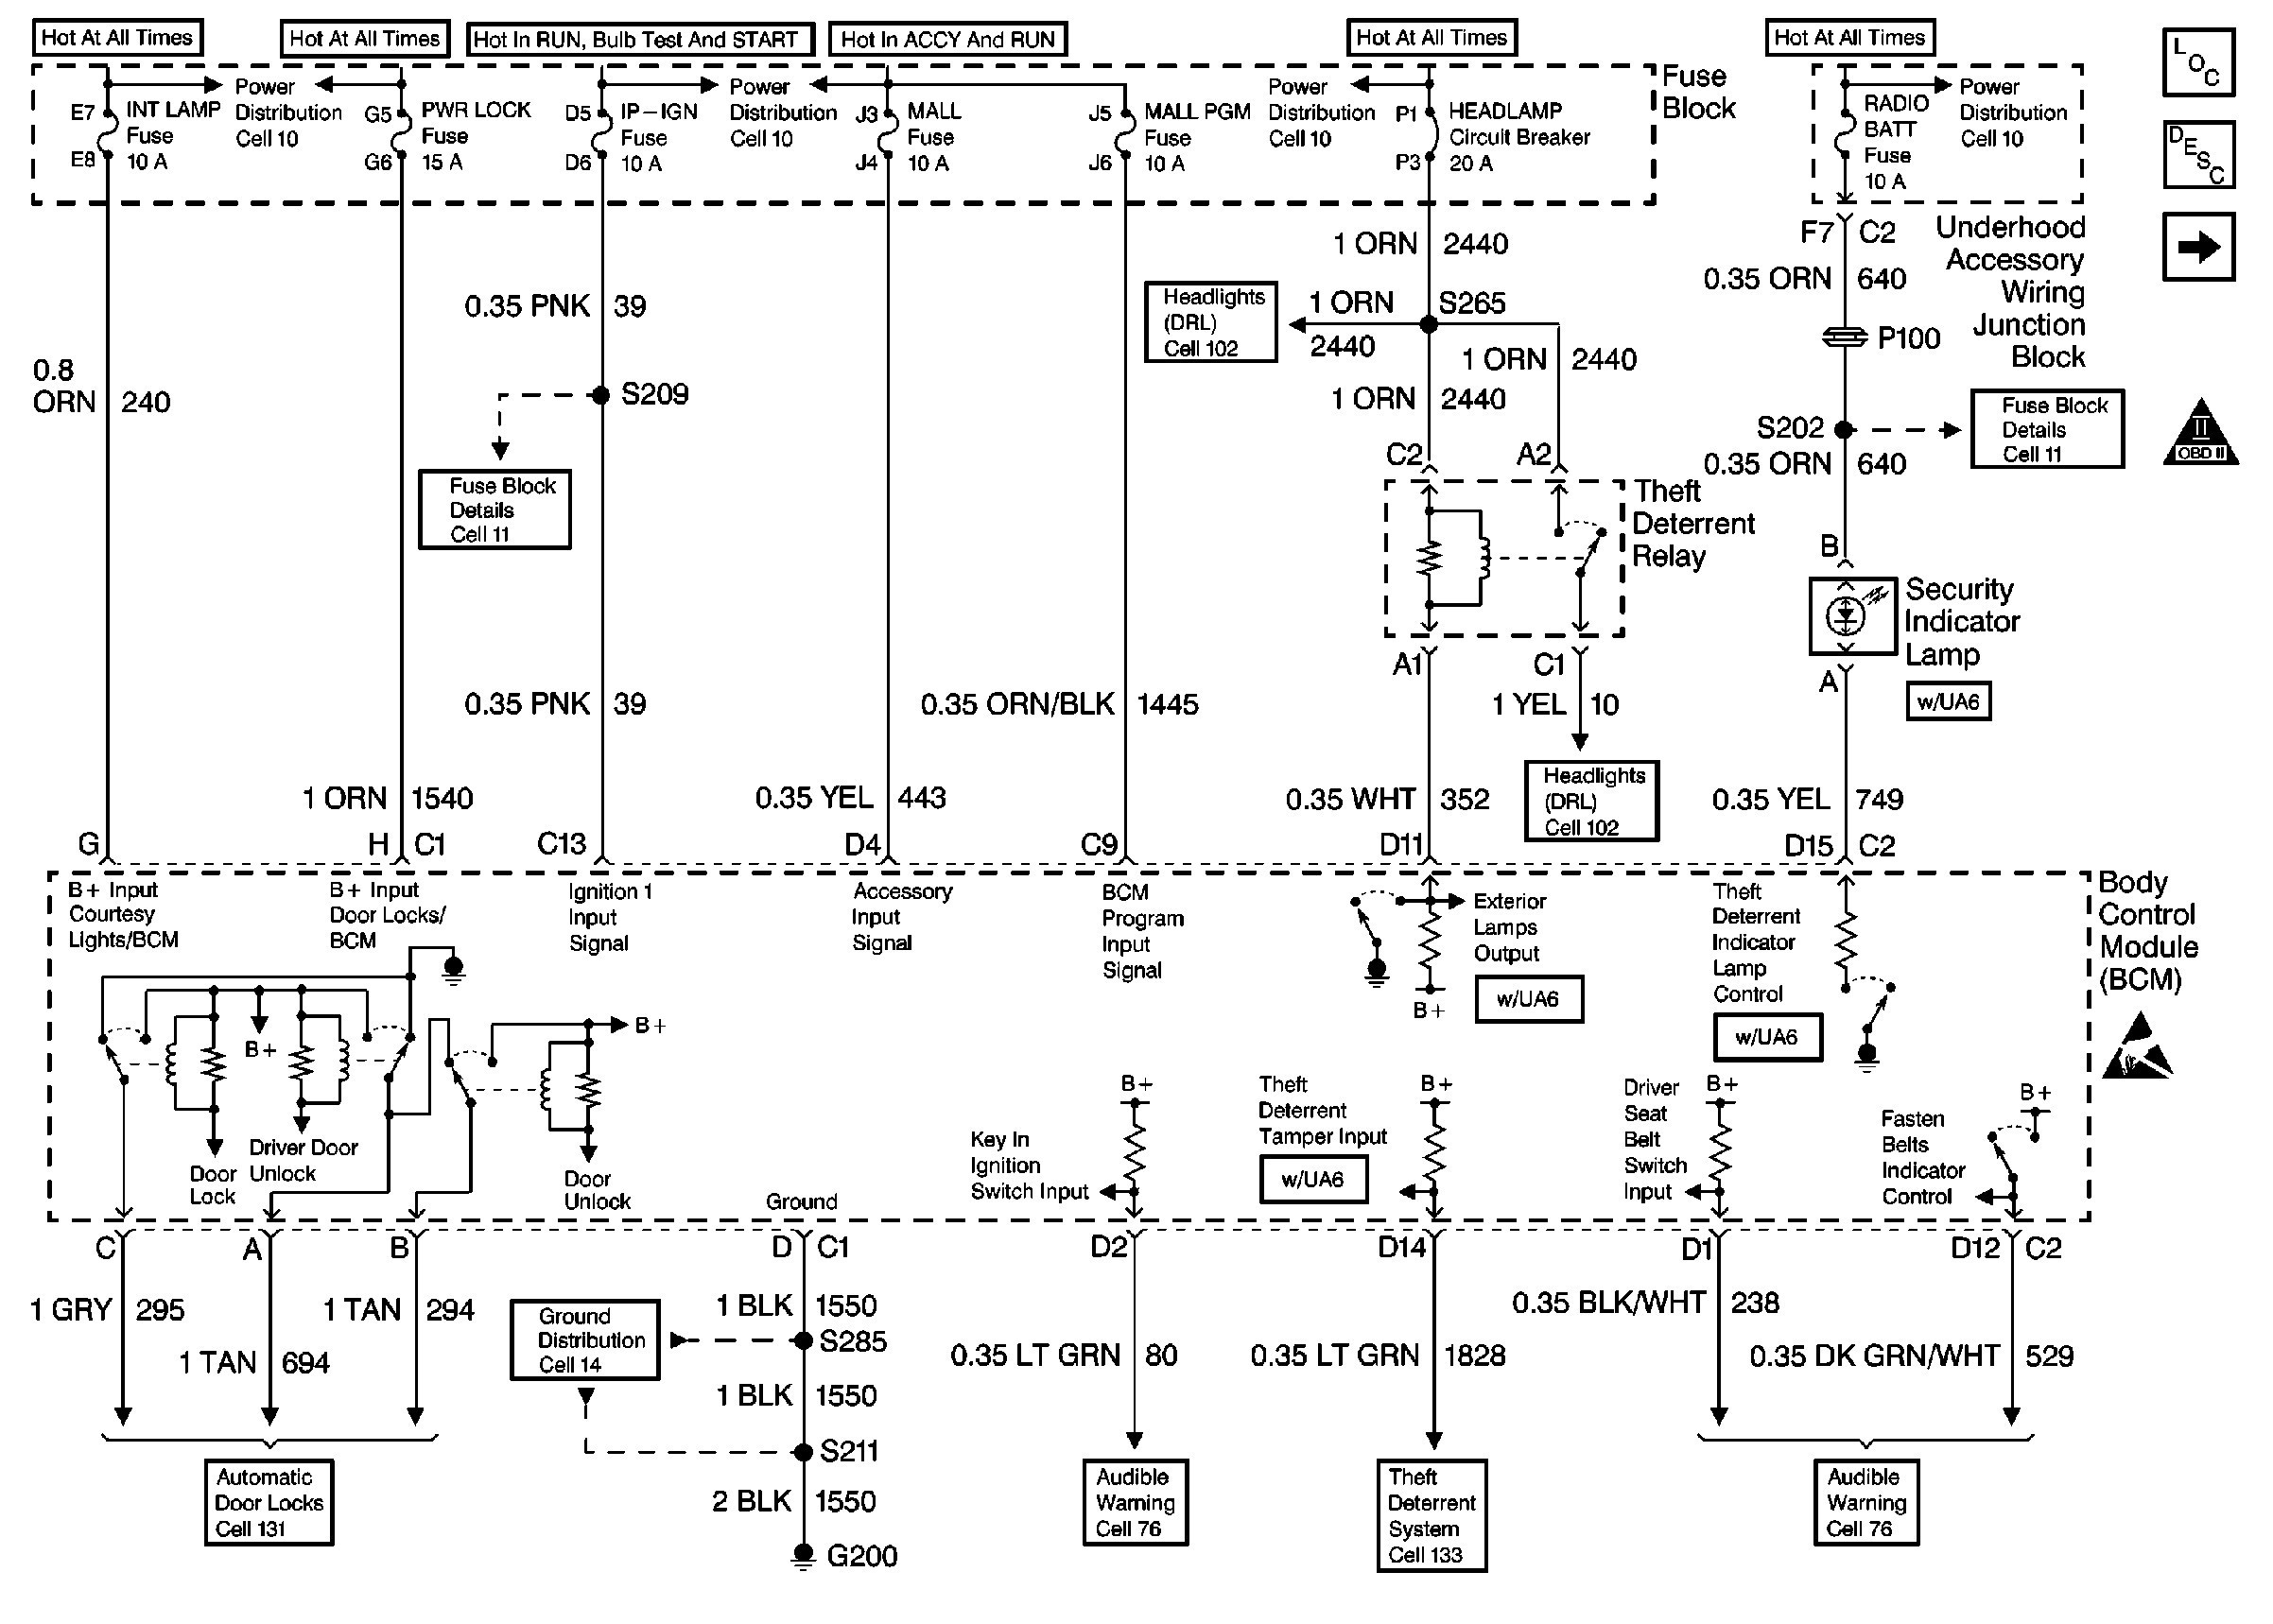 2000 Pontiac Sunfire Starter Wiring Diagram | Best Wiring Liry on pontiac grand am wiring diagram, 2001 pontiac montana starter wiring diagram, 1999 grand prix engine diagram, 2002 pontiac sunfire cooling system diagram, 2000 pontiac grand prix engine diagram, 1998 pontiac grand prix starter wiring diagram, 2000 pontiac montana wiring-diagram, 2000 dodge intrepid starter wiring diagram, pontiac sunfire radio wiring diagram, 2003 pontiac aztek starter wiring diagram, 2000 pontiac montana engine diagram, 2002 pontiac grand prix starter wiring diagram, 2002 gmc safari starter wiring diagram, push button starter wiring diagram, motor starter wiring diagram, pontiac sunfire exhaust diagram, 2000 chevy cavalier starter wiring diagram, jeep grand cherokee starter wiring diagram, 2005 pontiac grand prix starter wiring diagram, 2009 pontiac g8 starter wiring diagram,